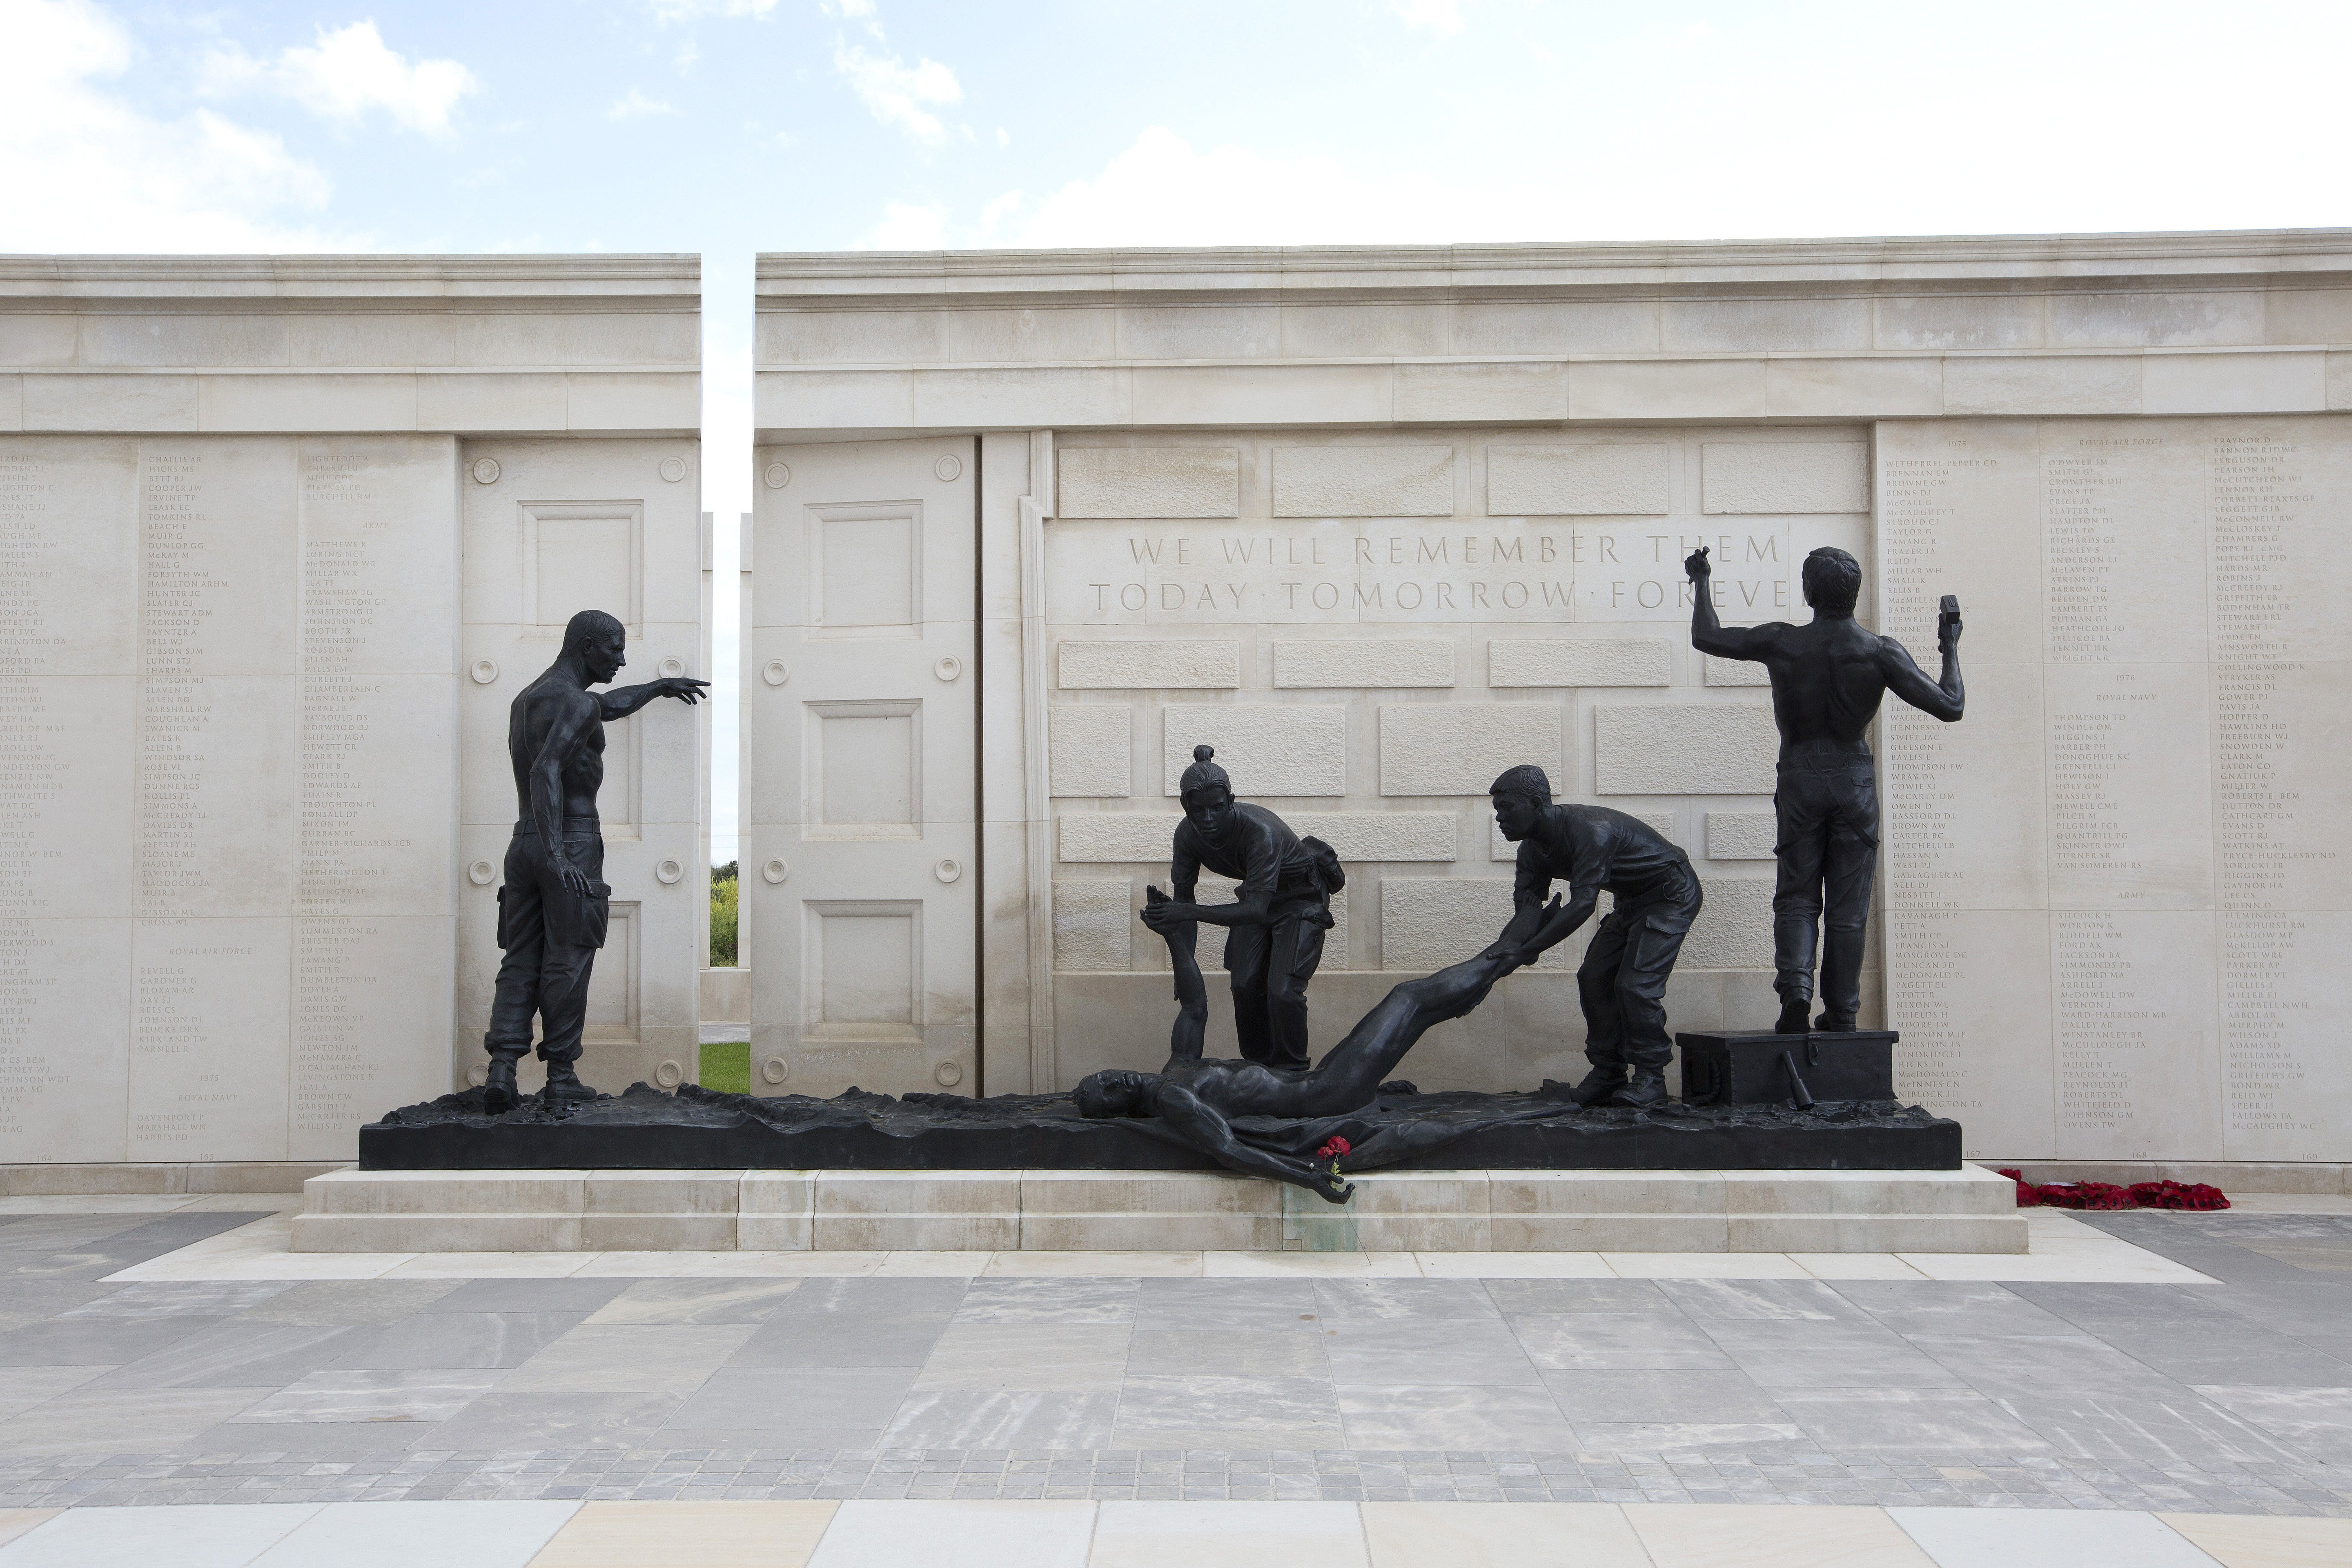 Armed Forces Memorial Enjoy Staffordhshire (1)